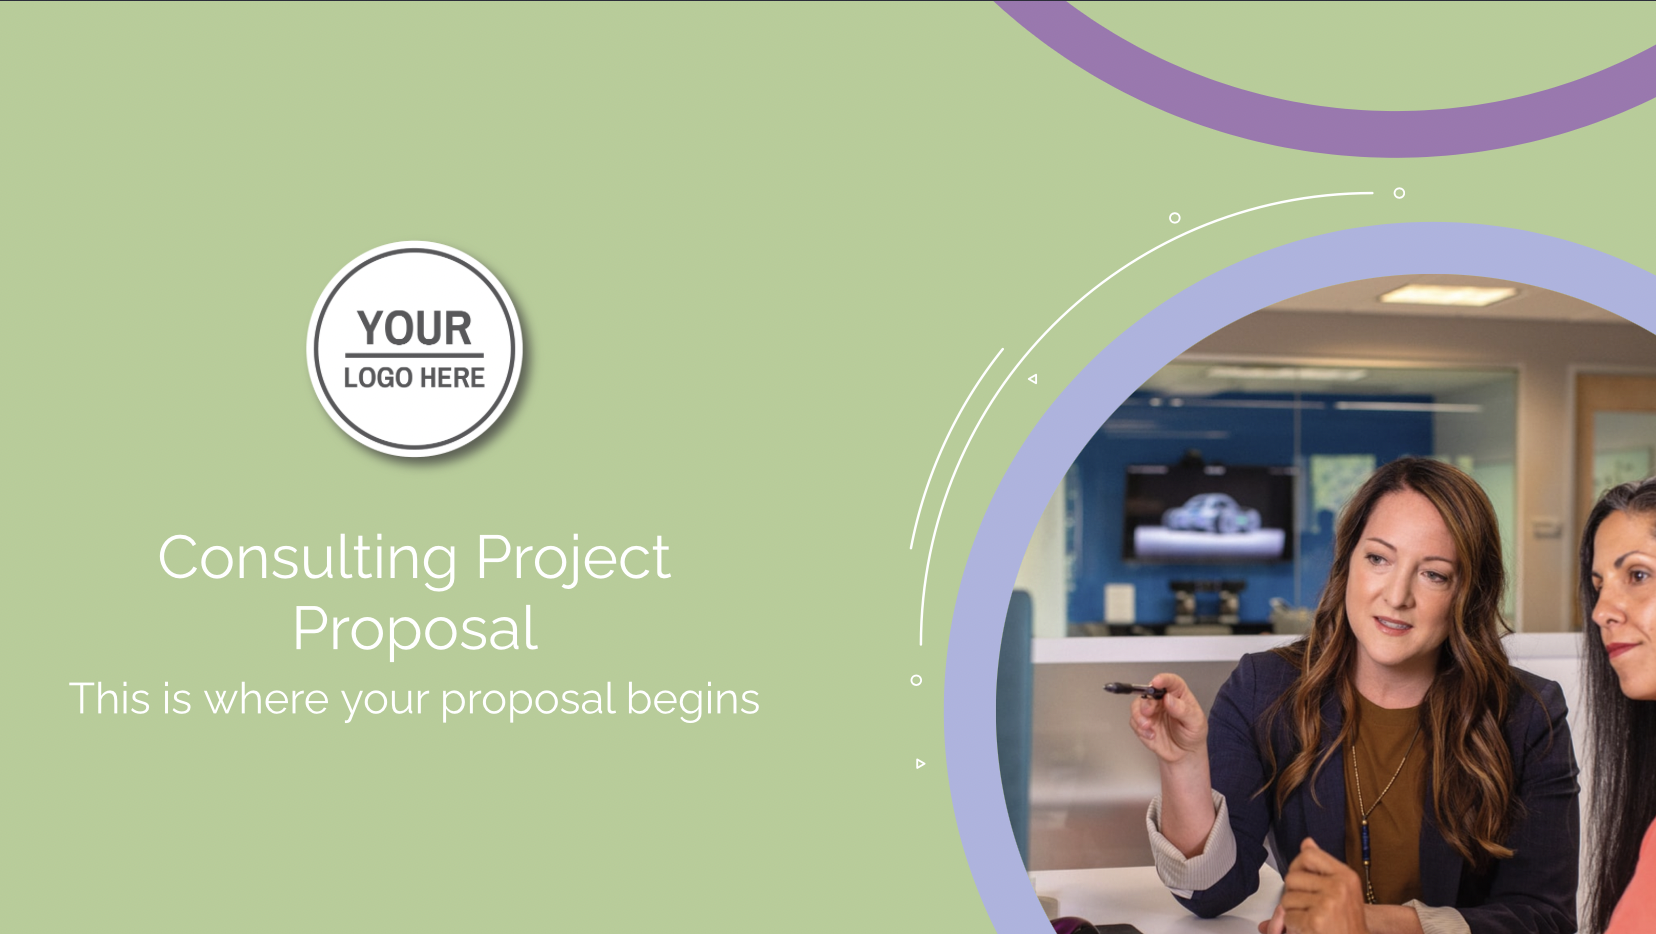 Through a project proposal, you can enhance the professional relationship you have facilitated between specific contributors and an organization.With the proposal, you build a framework regarding the project domain, clarify the objectives, and outline your plans and projections with regards to how they will be achieved.